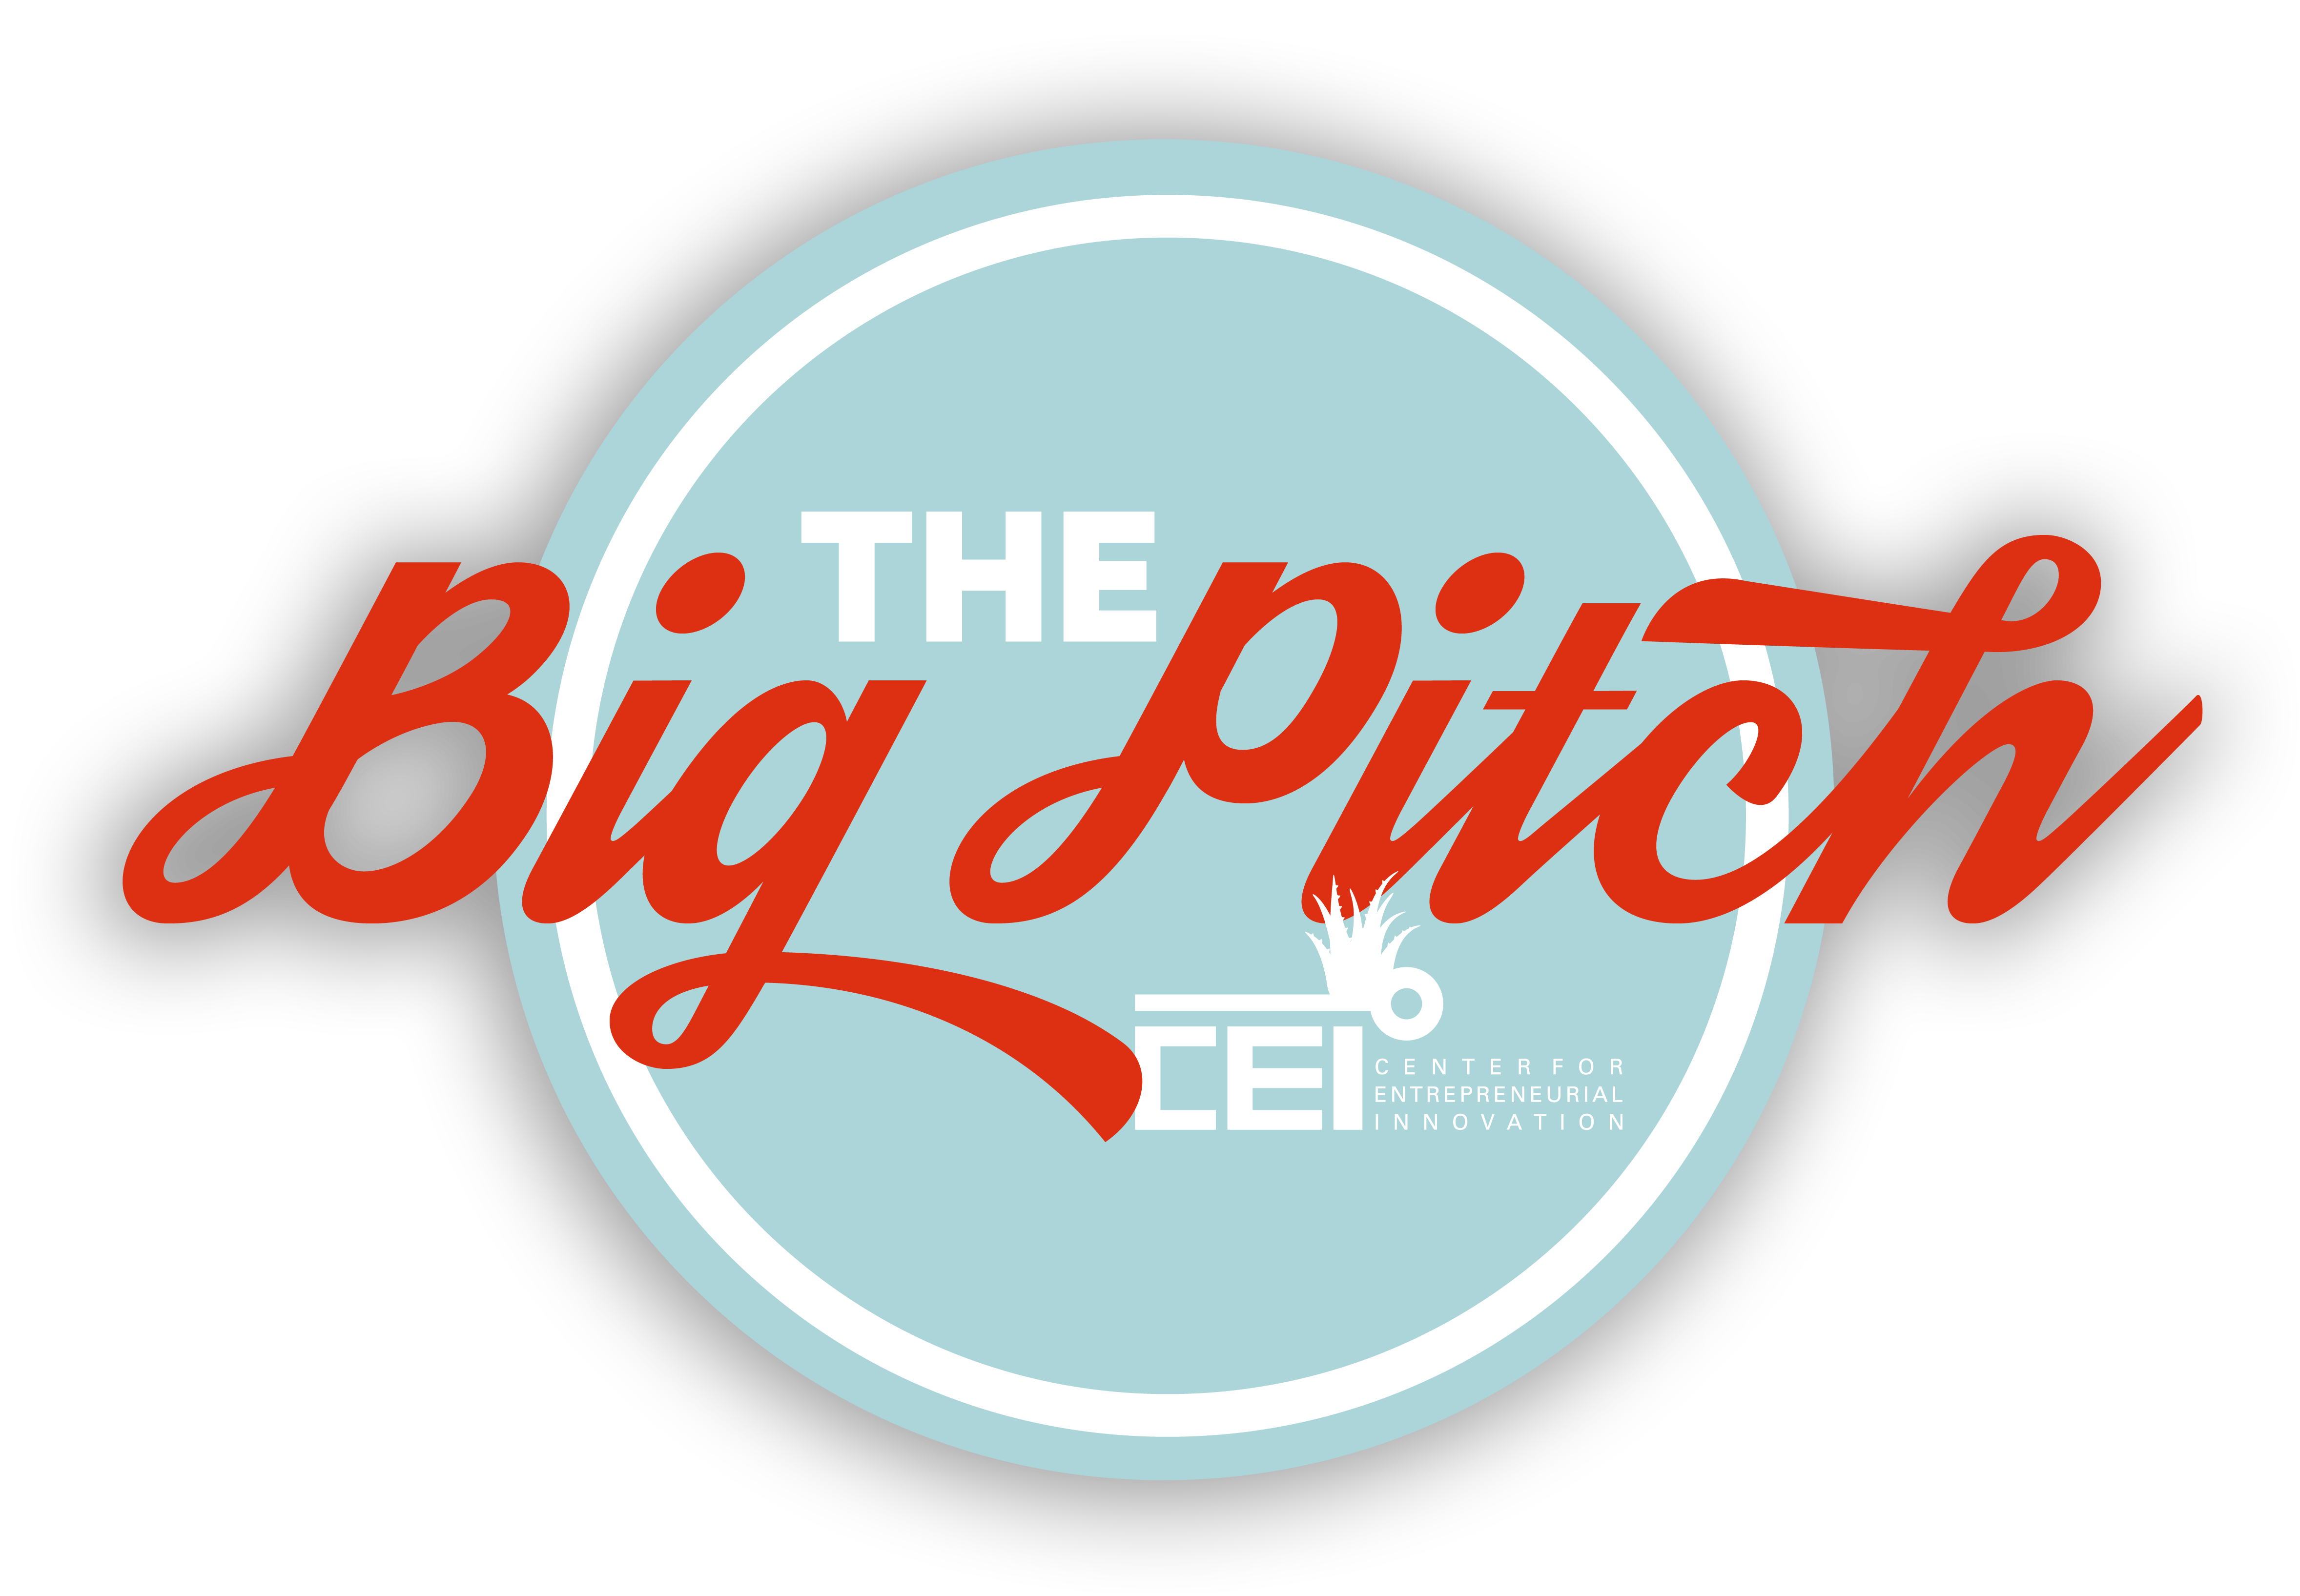 The Big Pitch Logo - Drop Shaddow